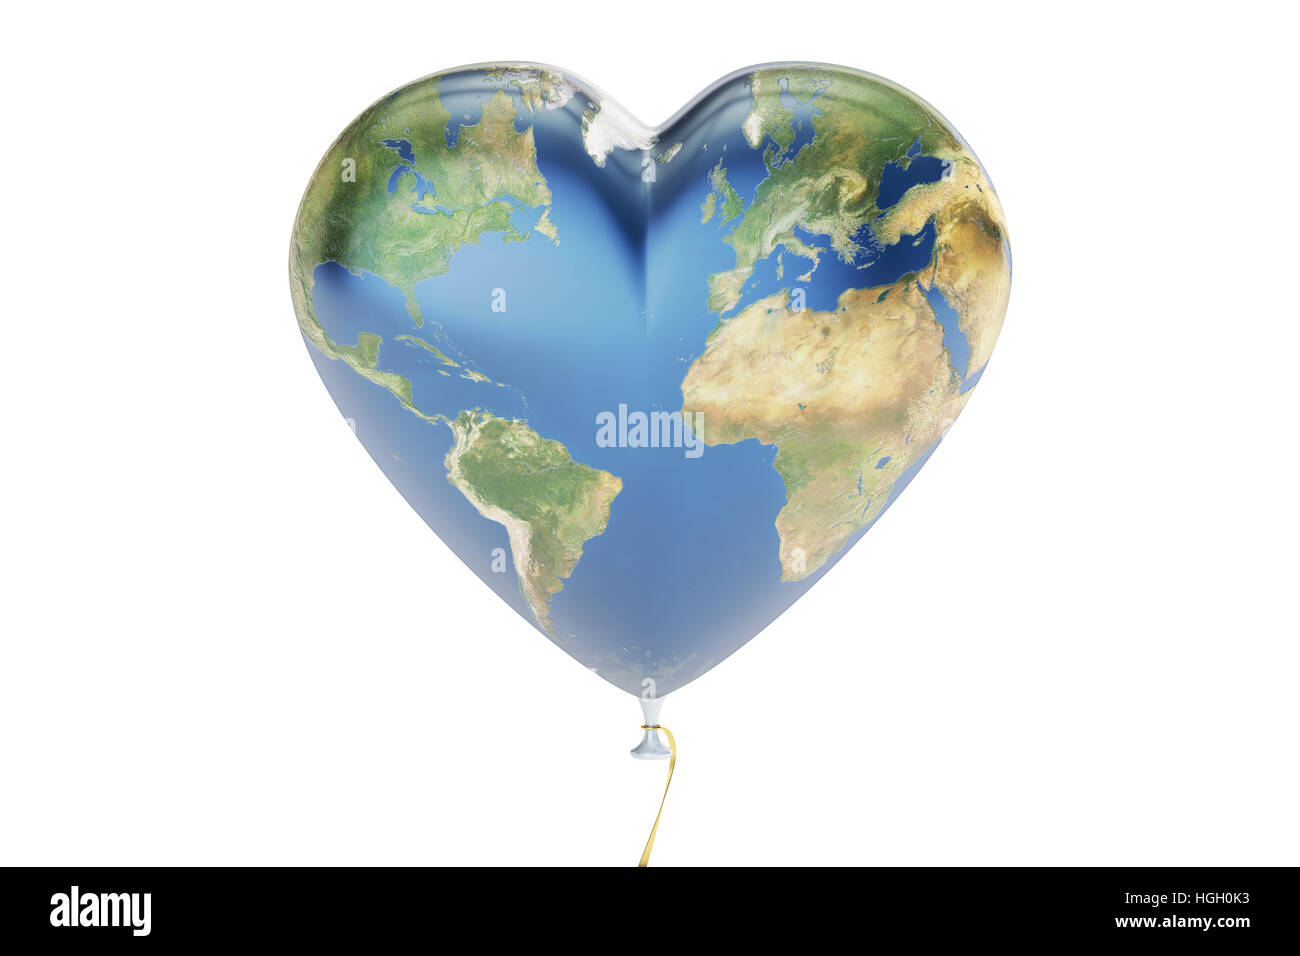 Balloon in the shape of hearts with map of earth 3d rendering stock balloon in the shape of hearts with map of earth 3d rendering isolated on white background gumiabroncs Choice Image